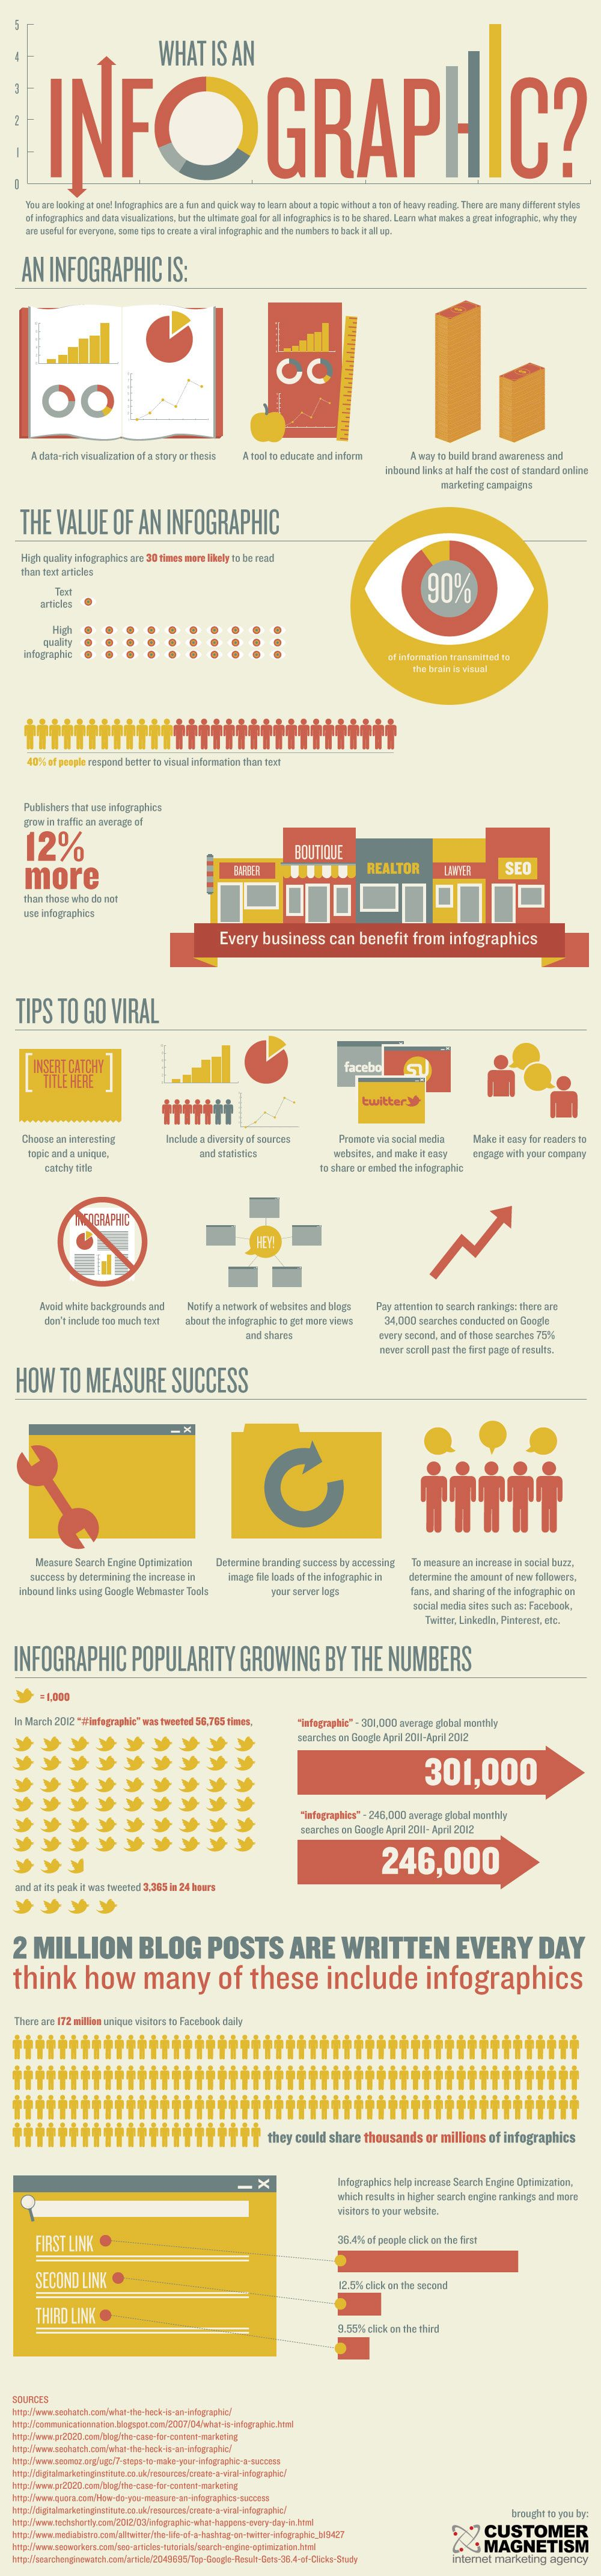 #infographic about #infographics